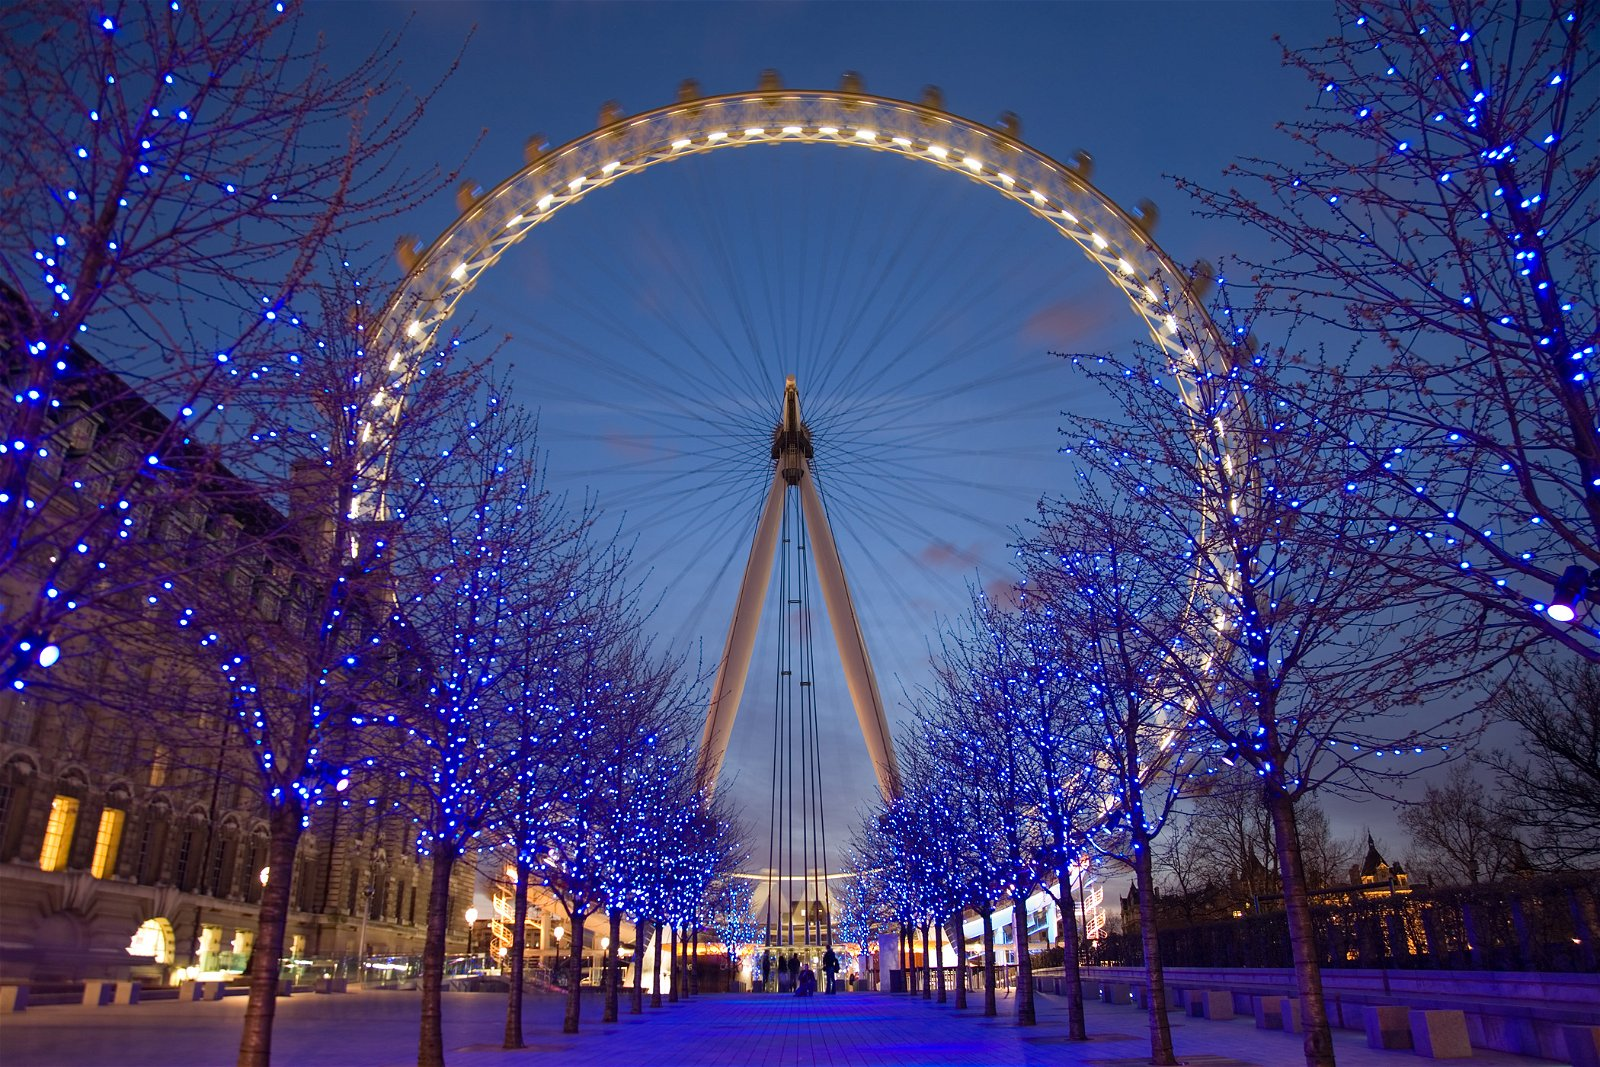 London is the place to be - Photo by Diliff - CC BY 2.5